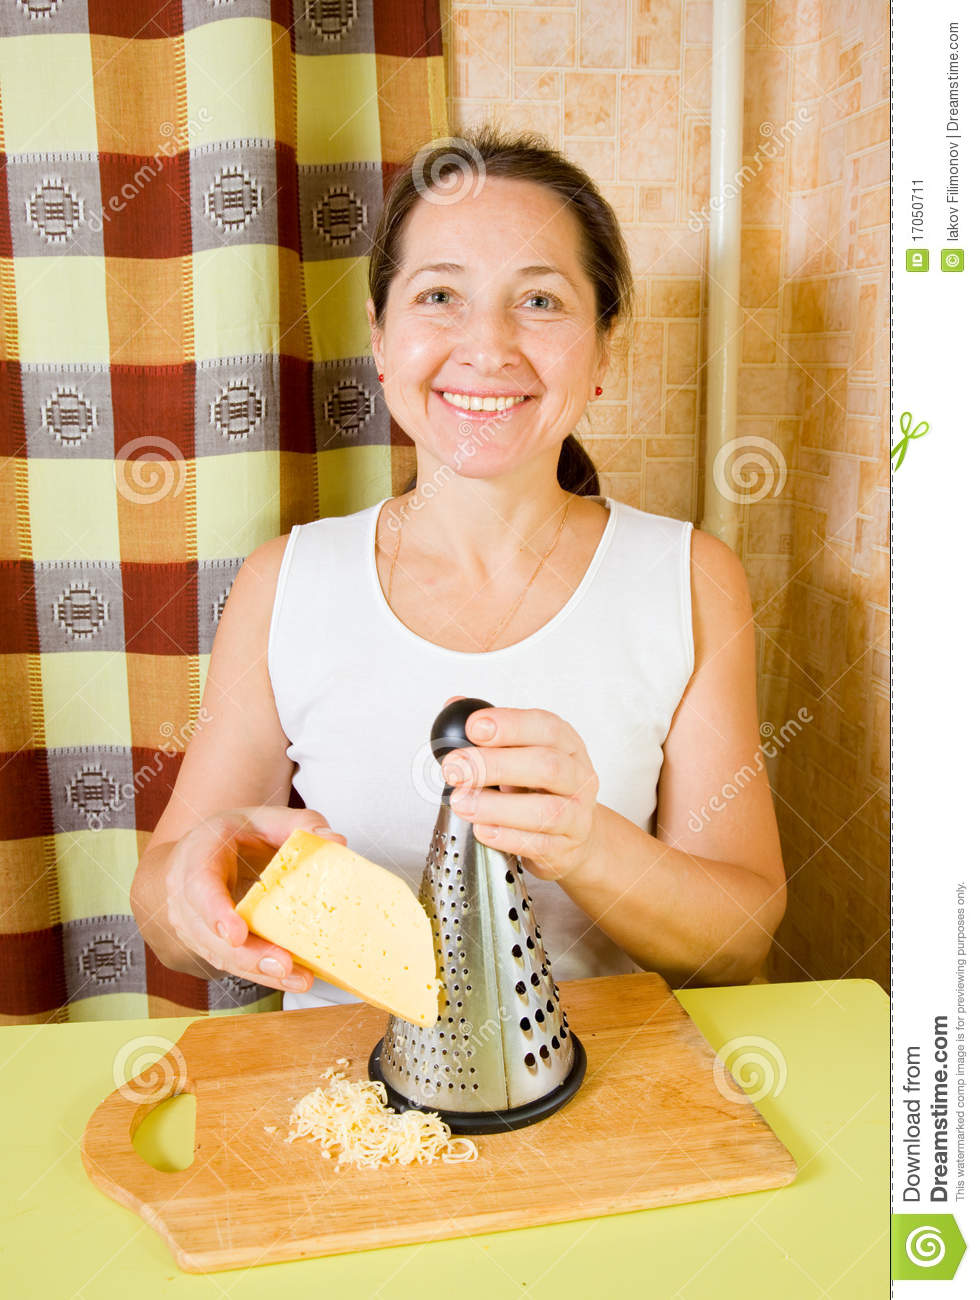 Mature Woman Grating Cheese Stock Image  Image 17050711